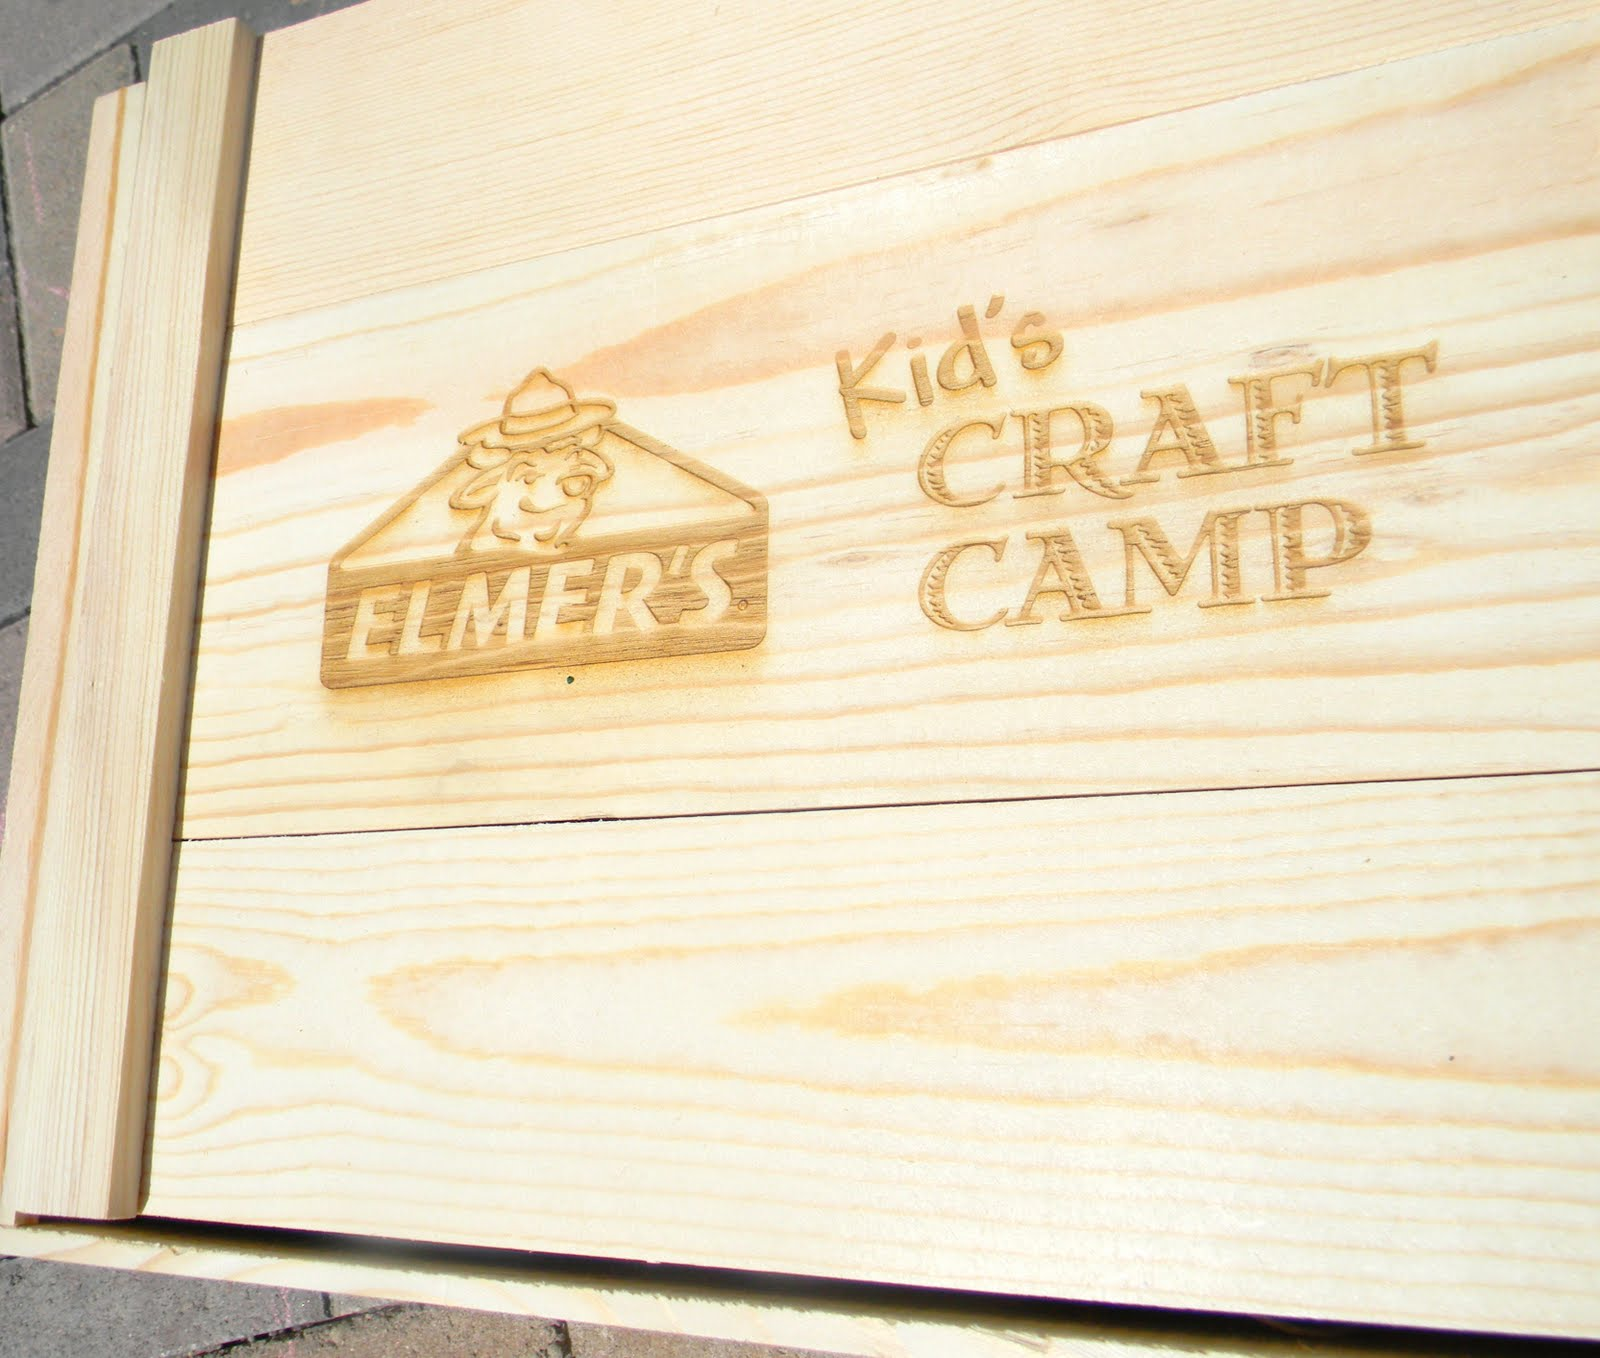 Elmer's is generously giving away craft kits for you to have your own ...